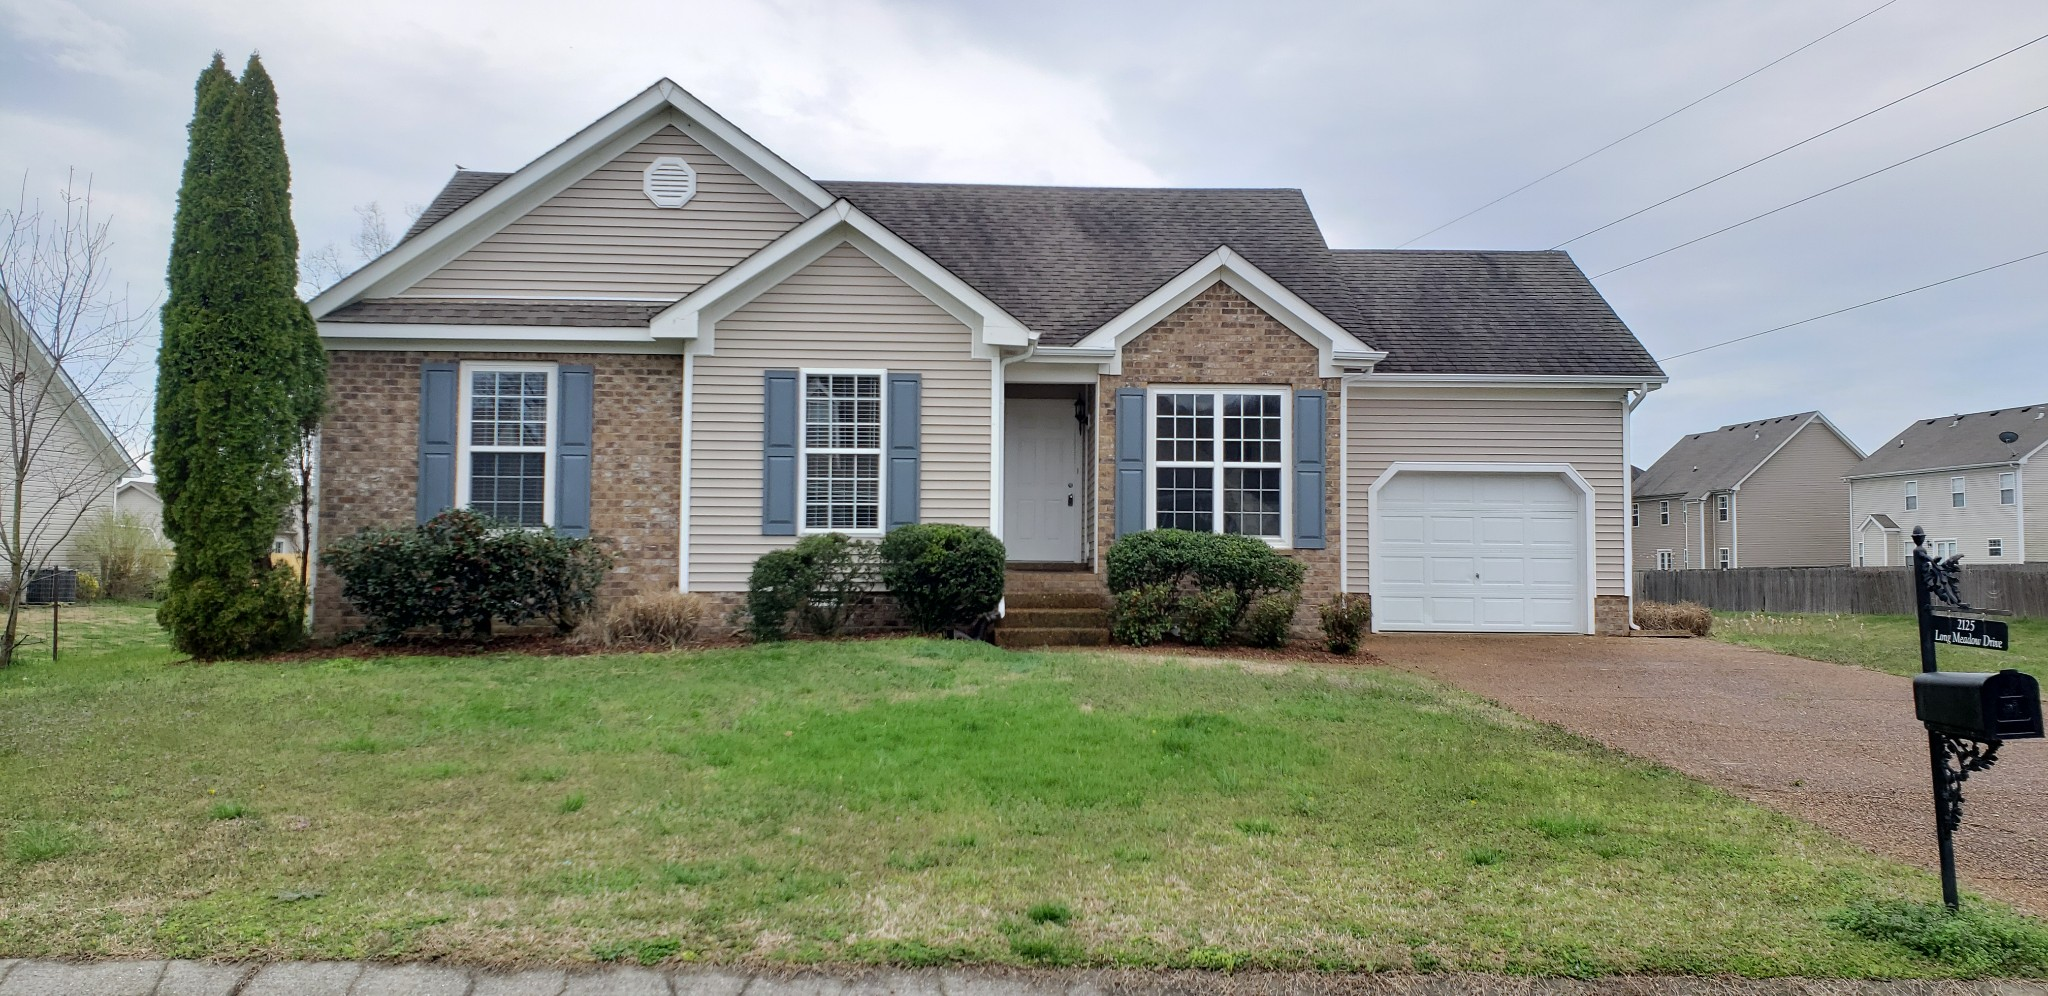 2125 Long Meadow Dr, Spring Hill in Williamson County, T County, TN 37174 Home for Sale